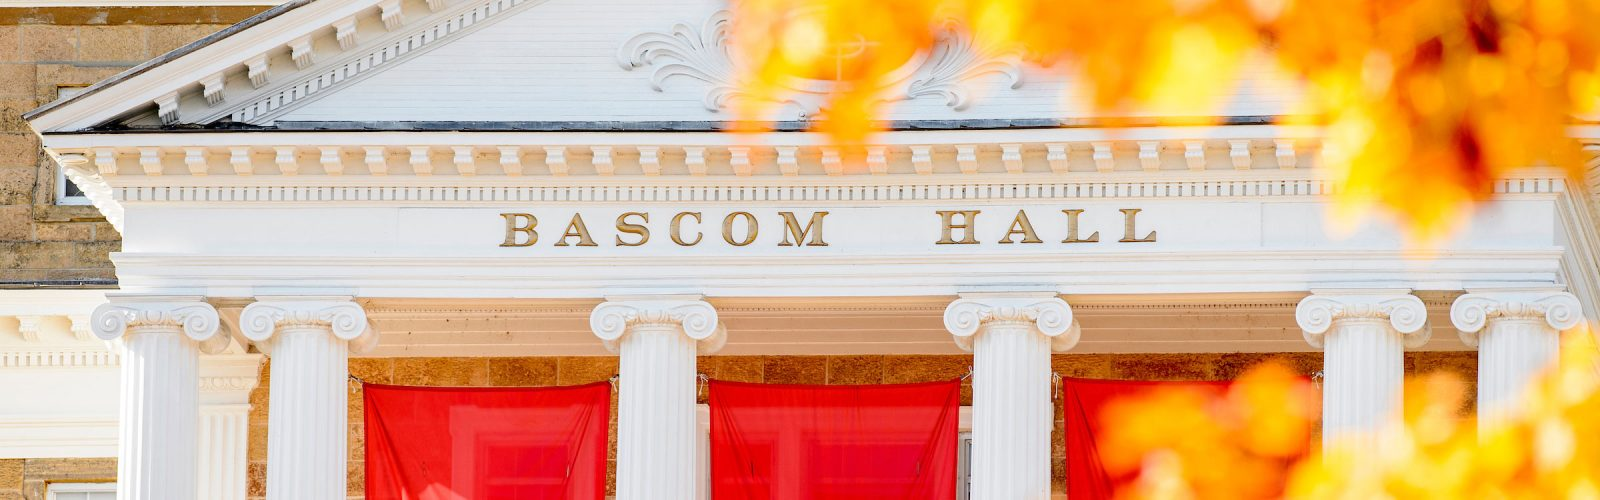 Bascom Hall and a red W banner are framed by yellow and orange autumn leaves.